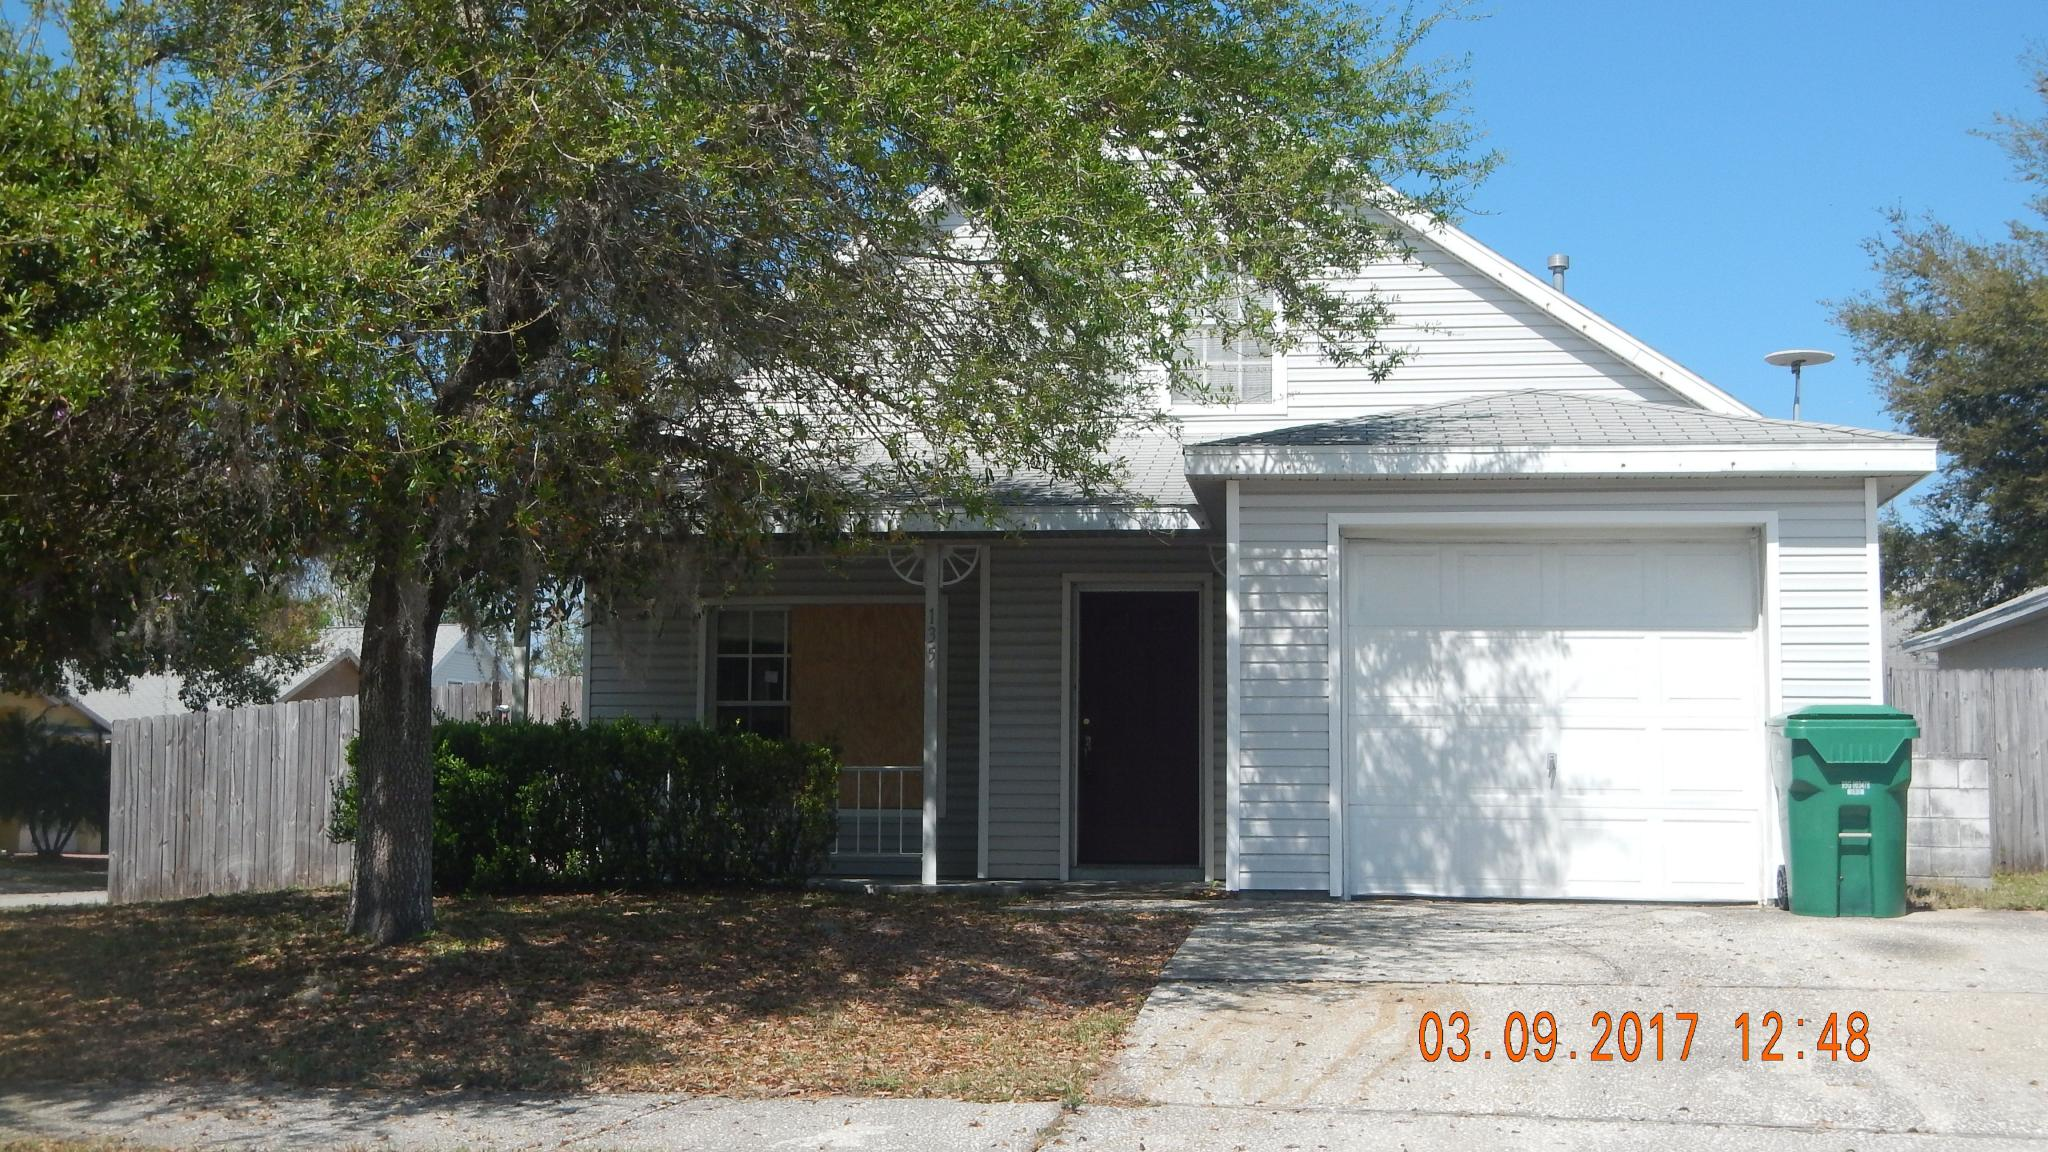 135 hartsdale dr winter garden fl 34787 recently sold trulia